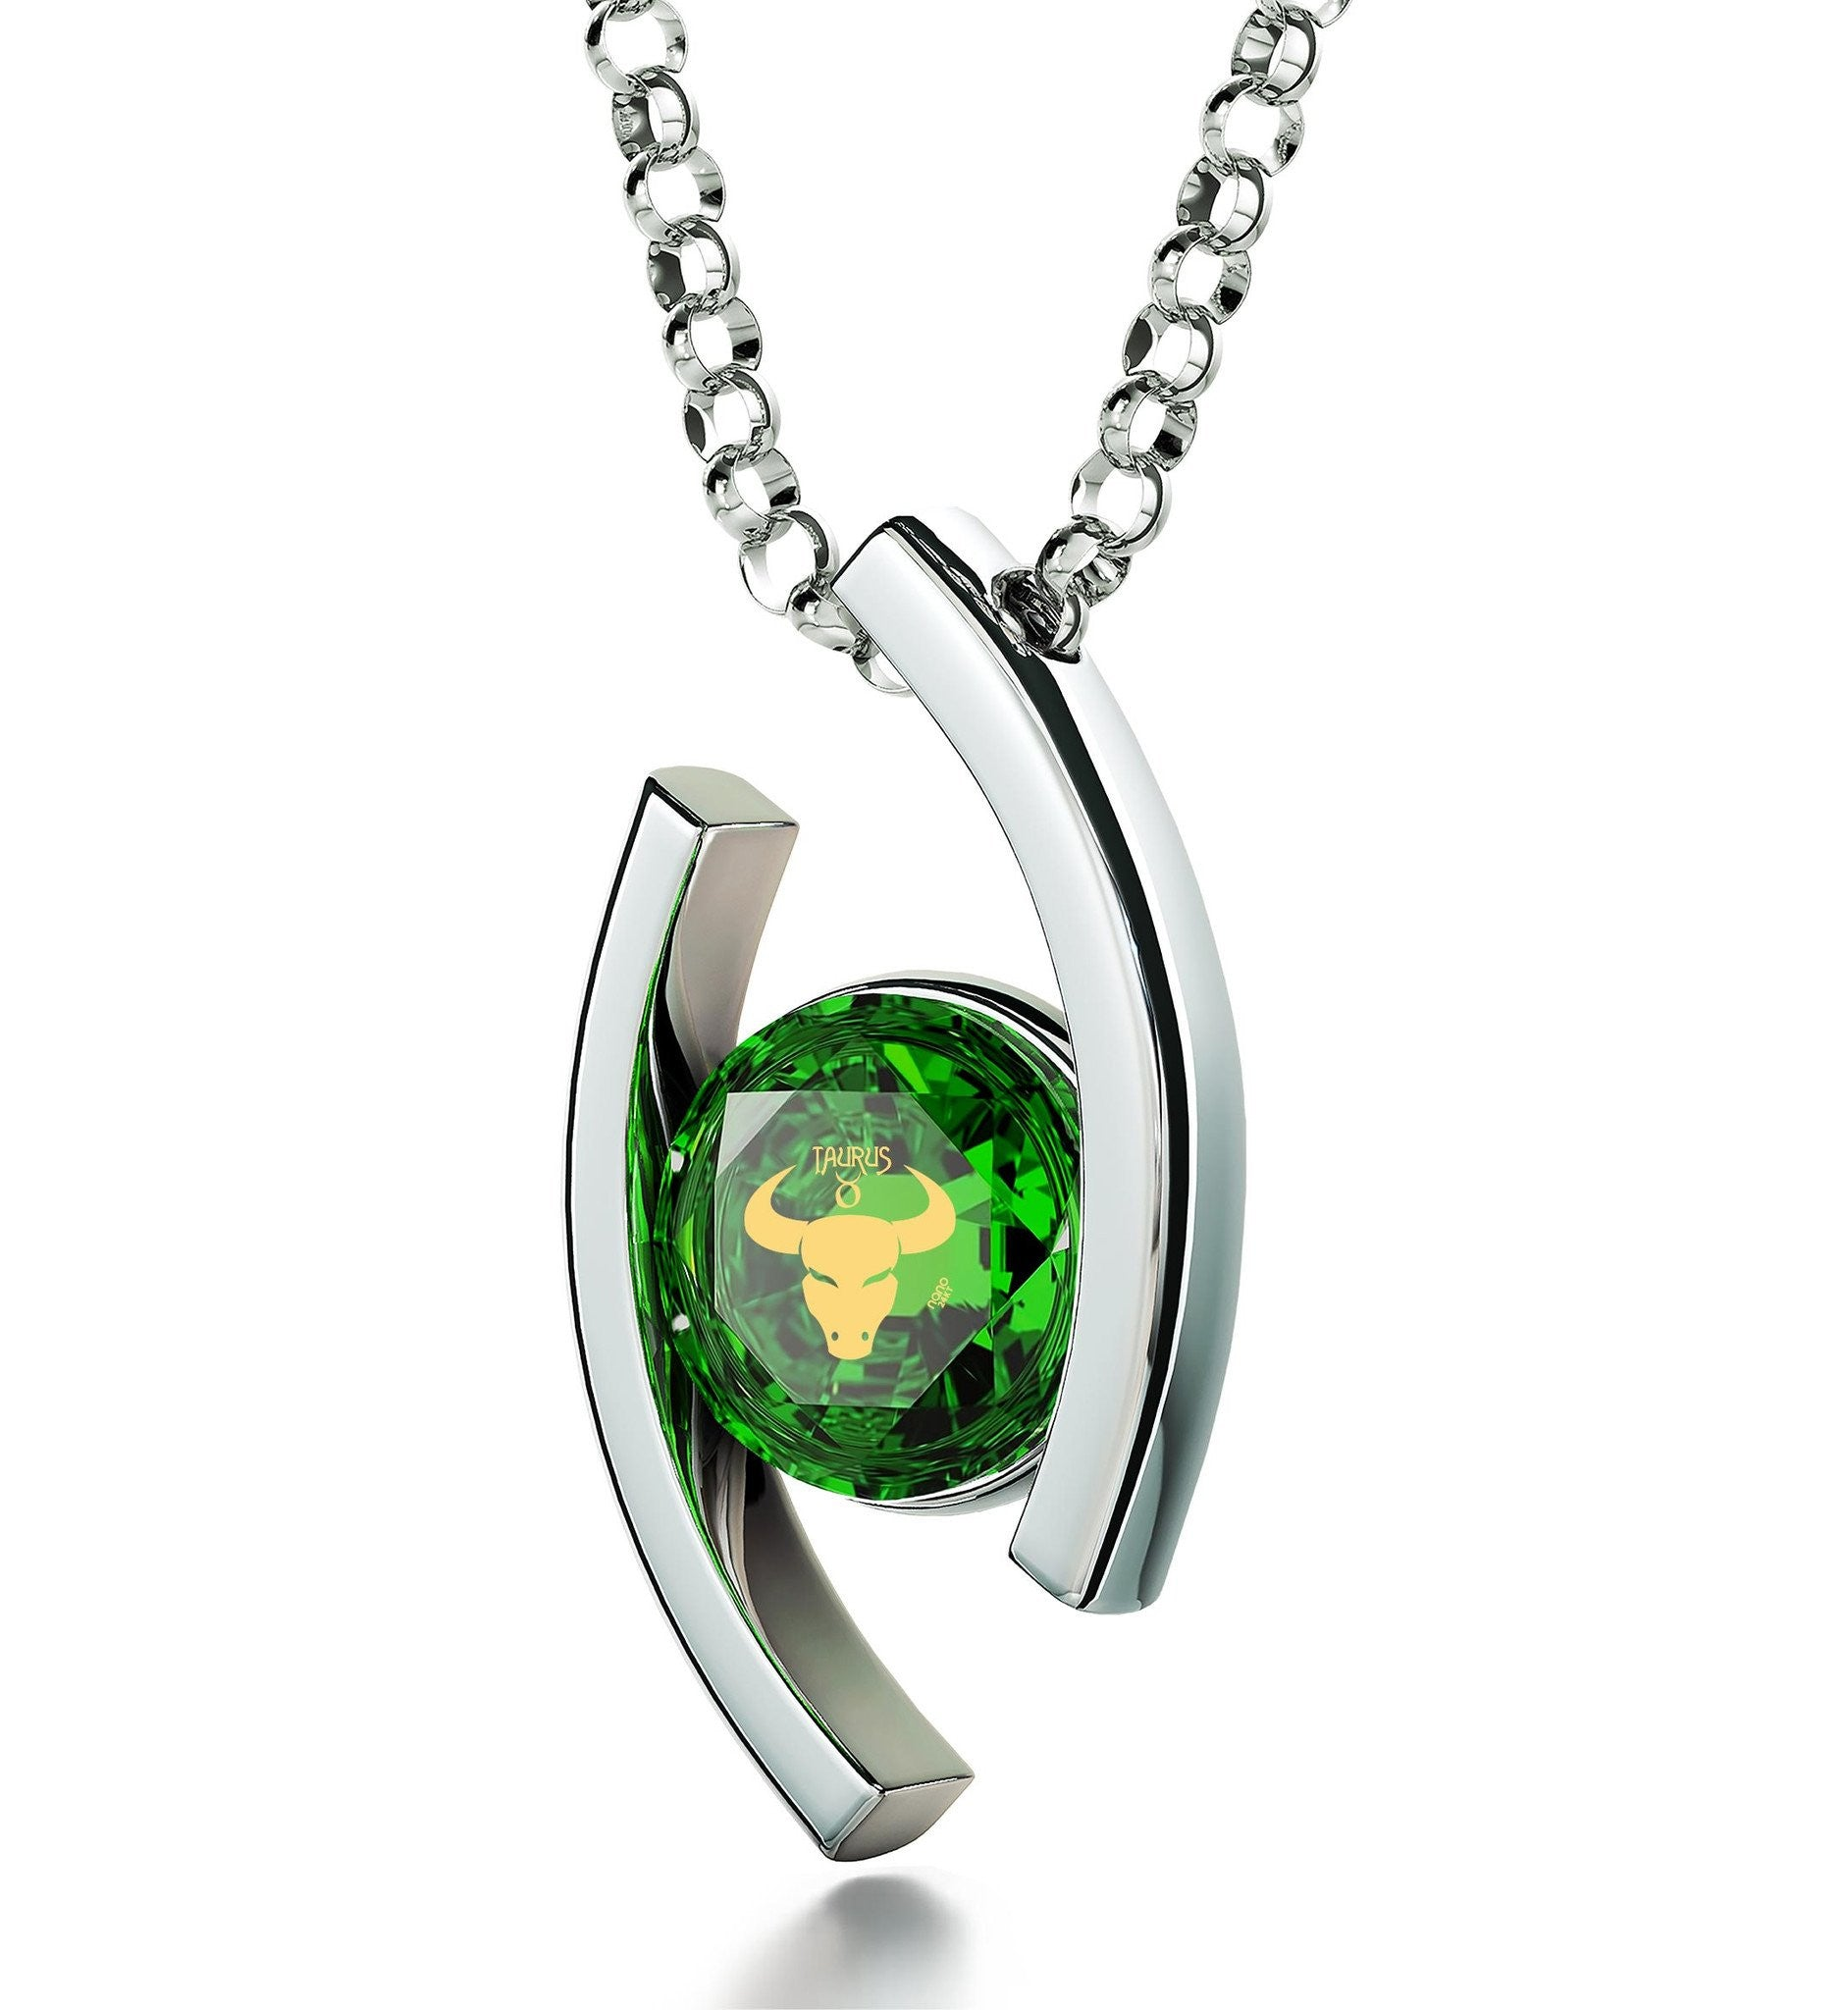 designs twist meanings green pounamu mountain necklace greenstone about and more info new jade zealand stone